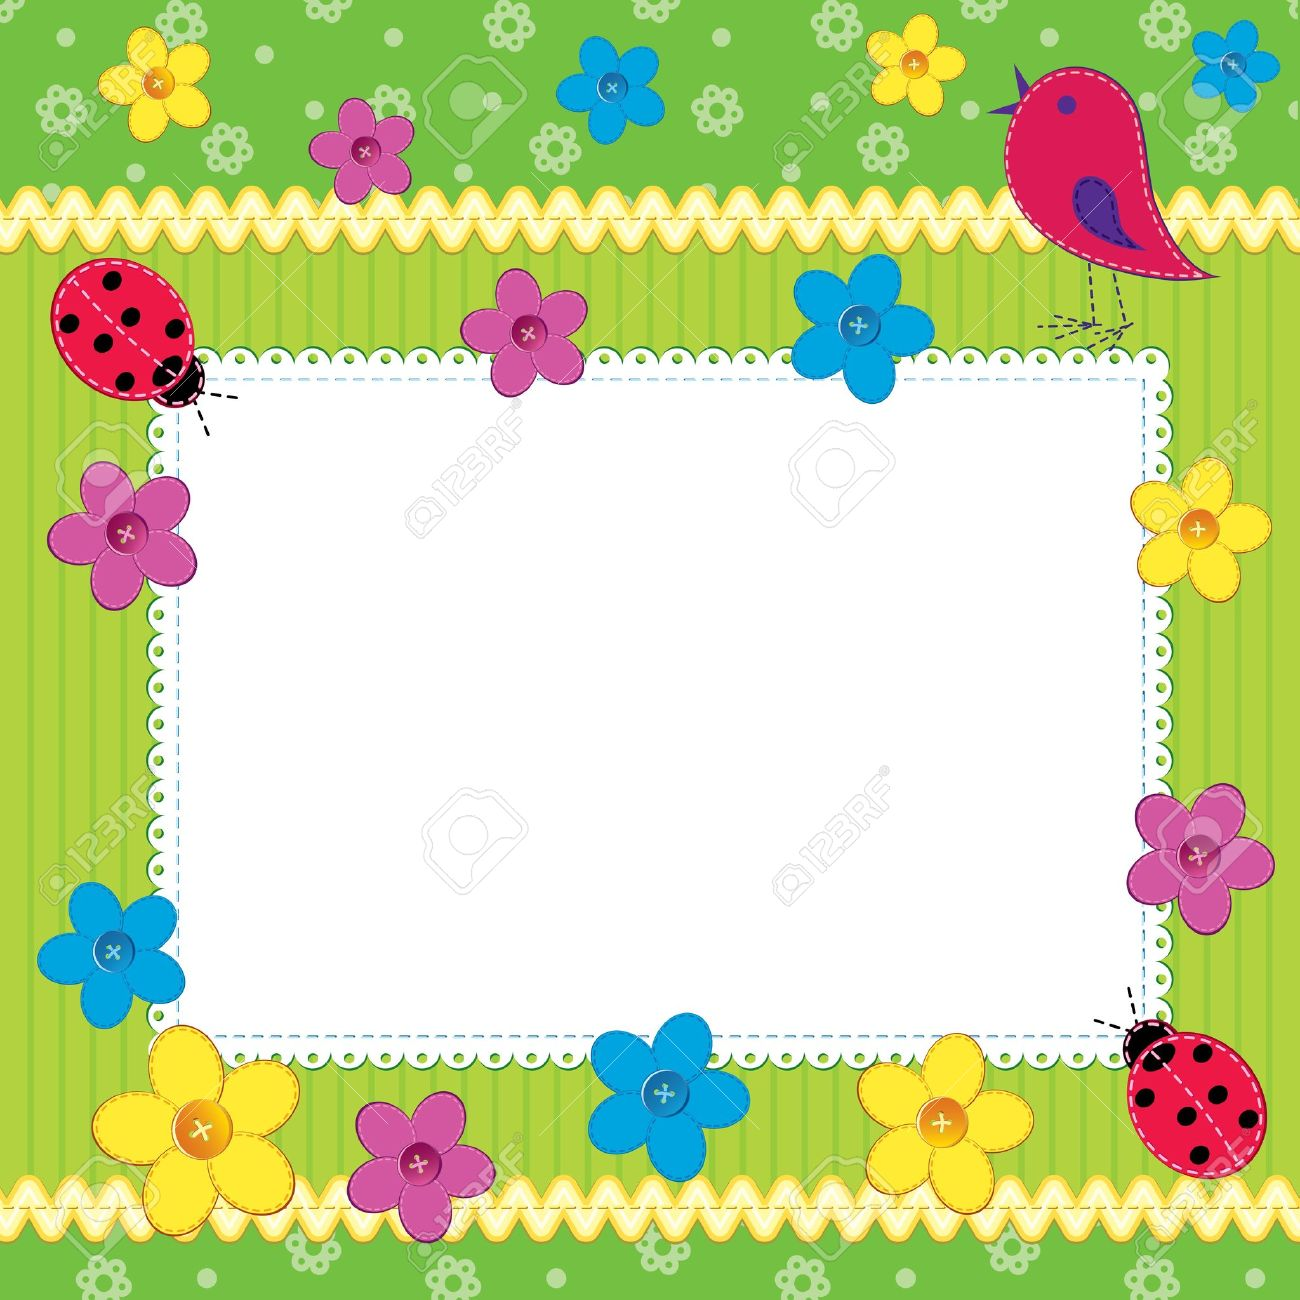 Scrapbook photo frame or card with cute flowers and butterfly Stock Vector - 11487740